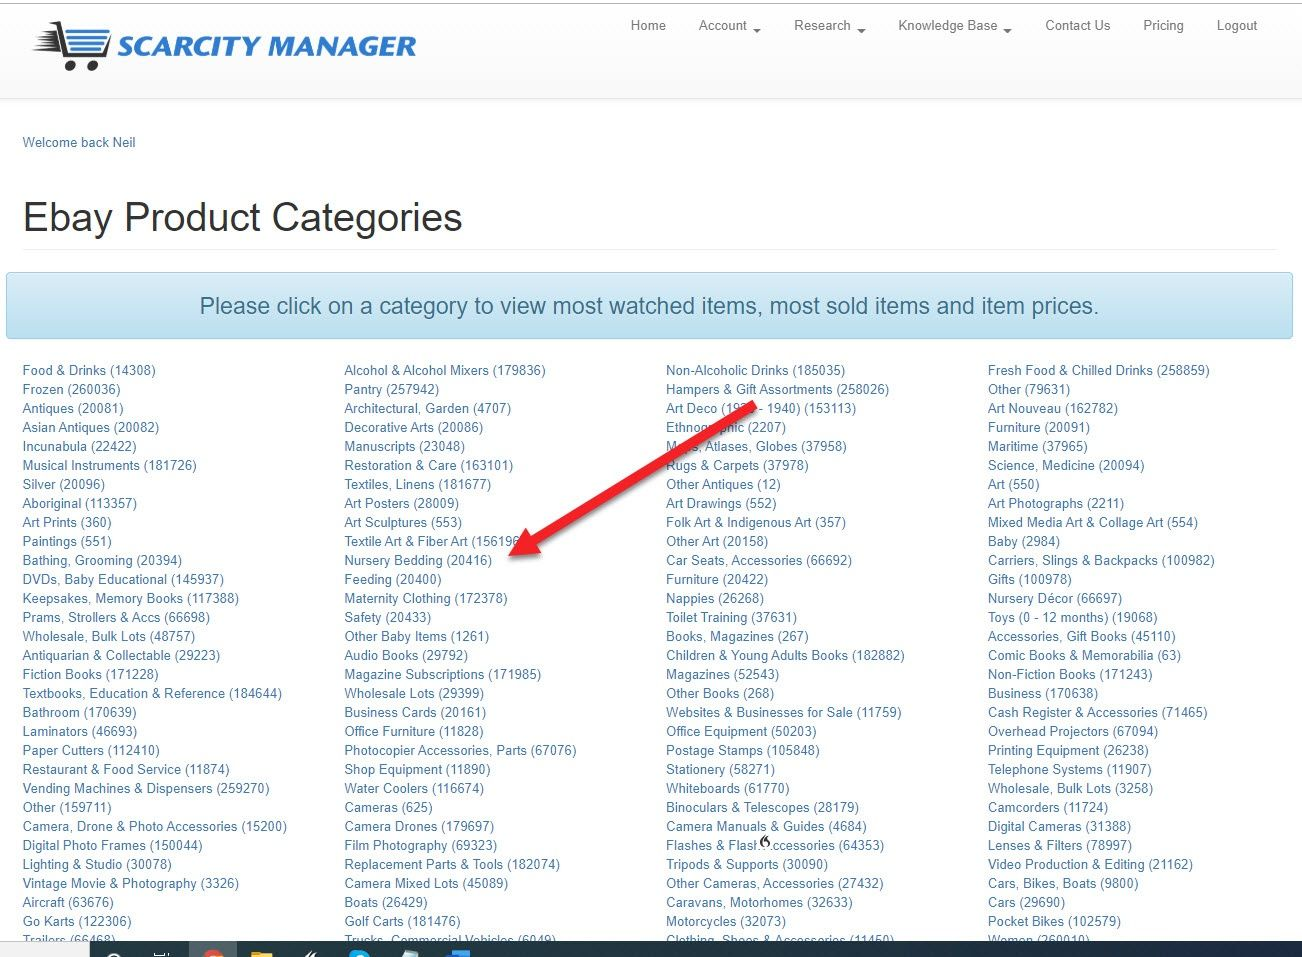 eBay Product Categories 2